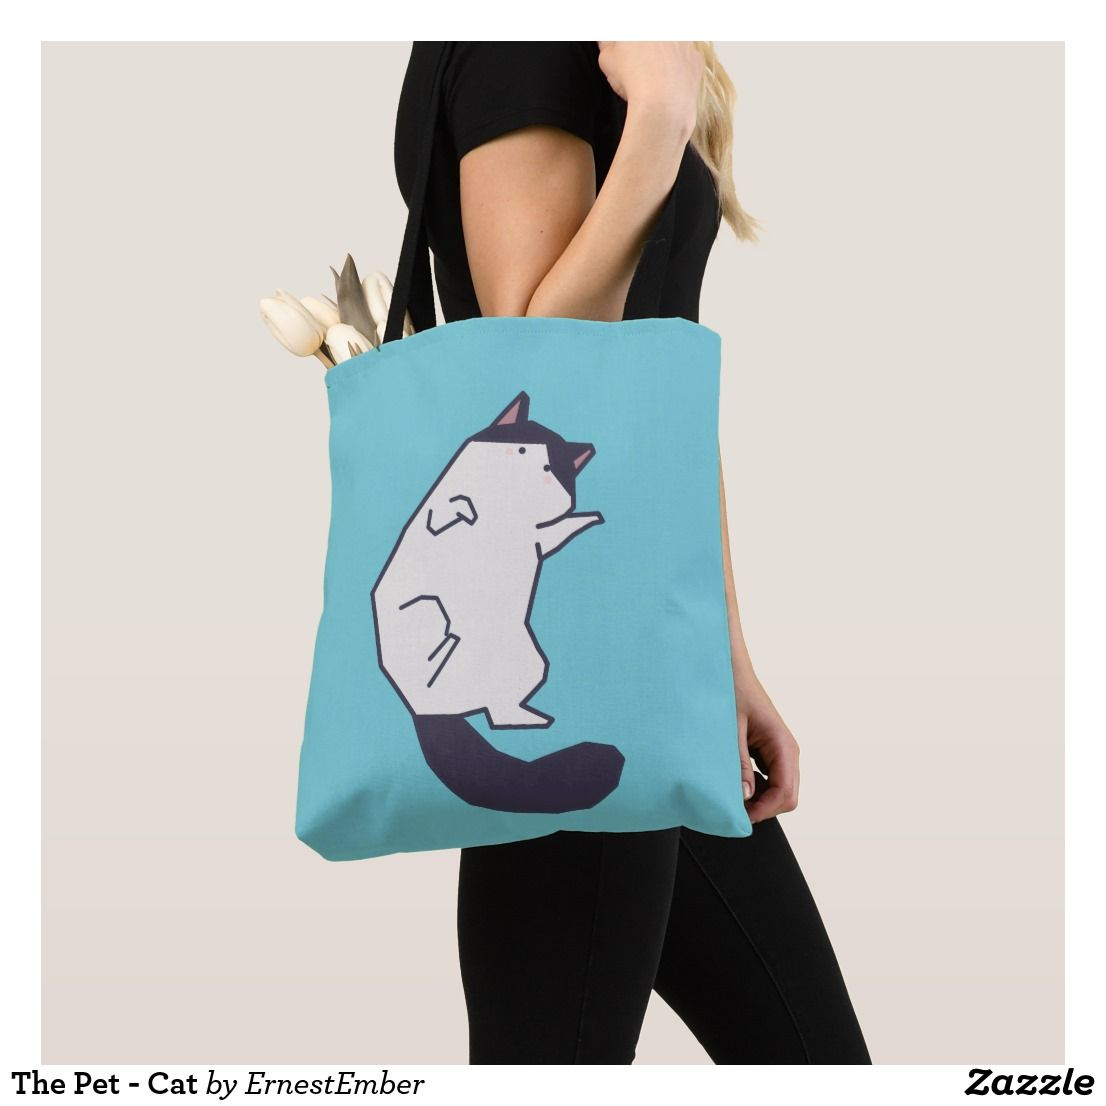 Cute Space Cat Design on Black Tote Bag  Gift for her  Gift for him  cat bag  Cheddar Studios